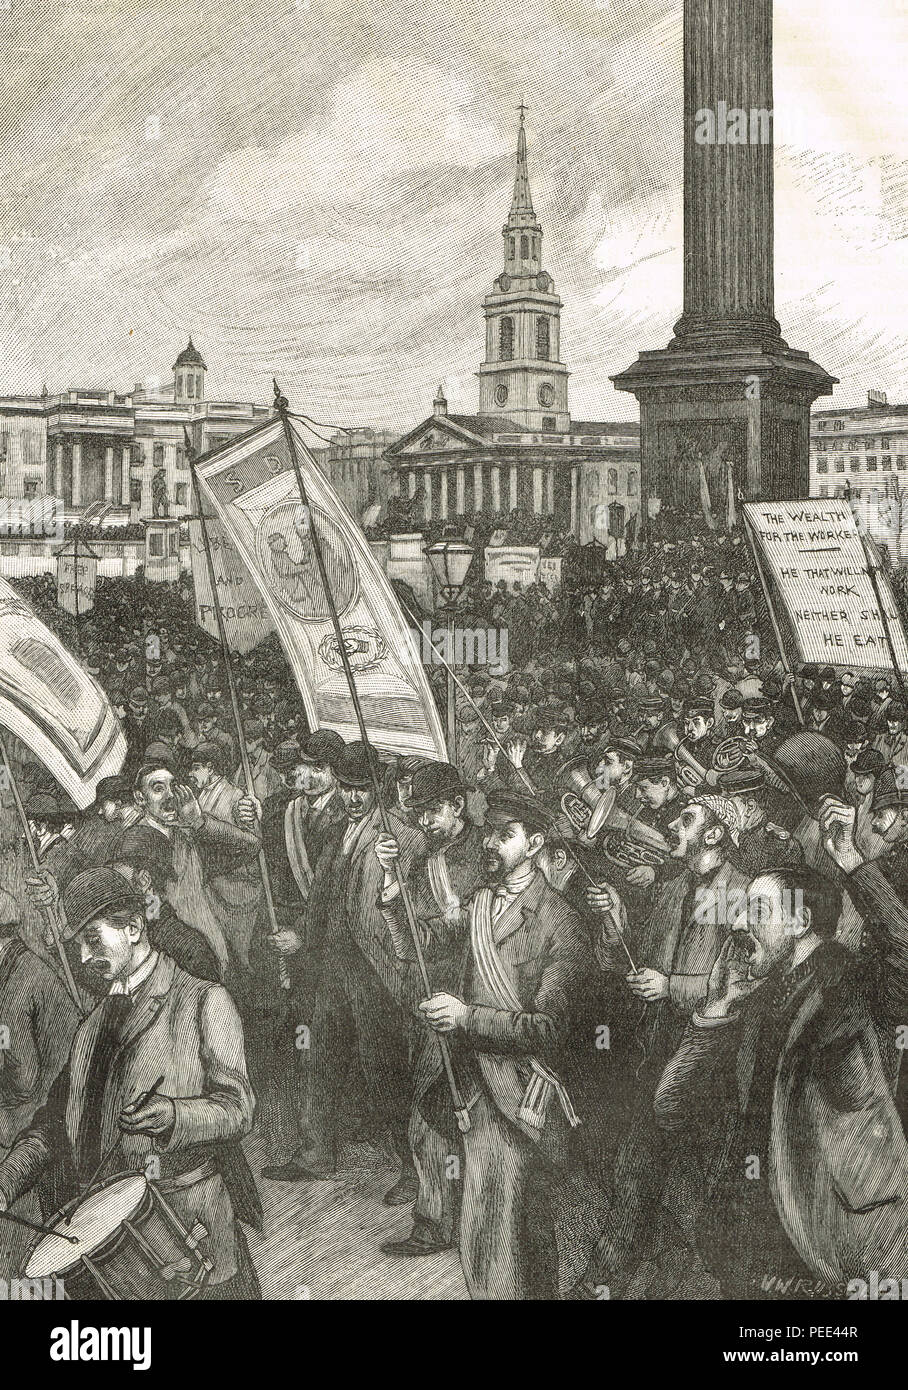 Public meeting in Trafalgar Square, London, 13 November 1892, in commemoration of Bloody Sunday - Stock Image